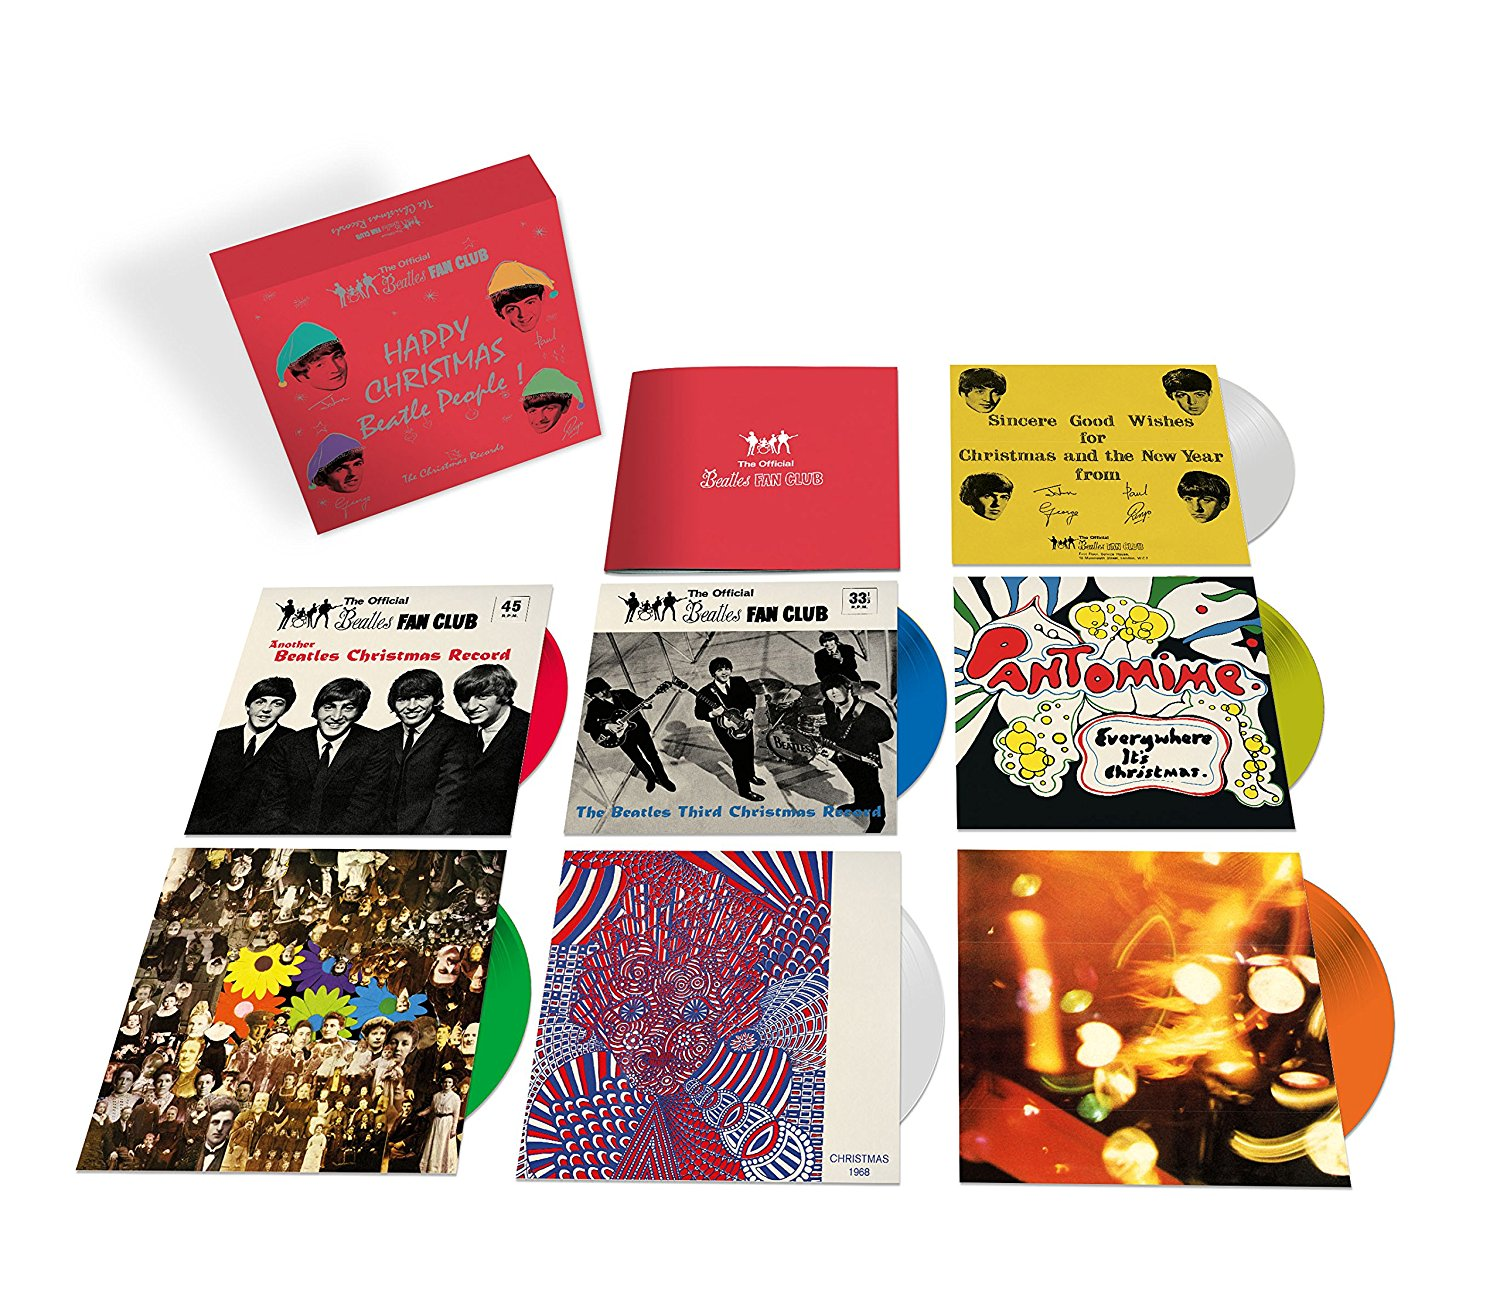 New Beatles Box Set Collects Their Christmas Records